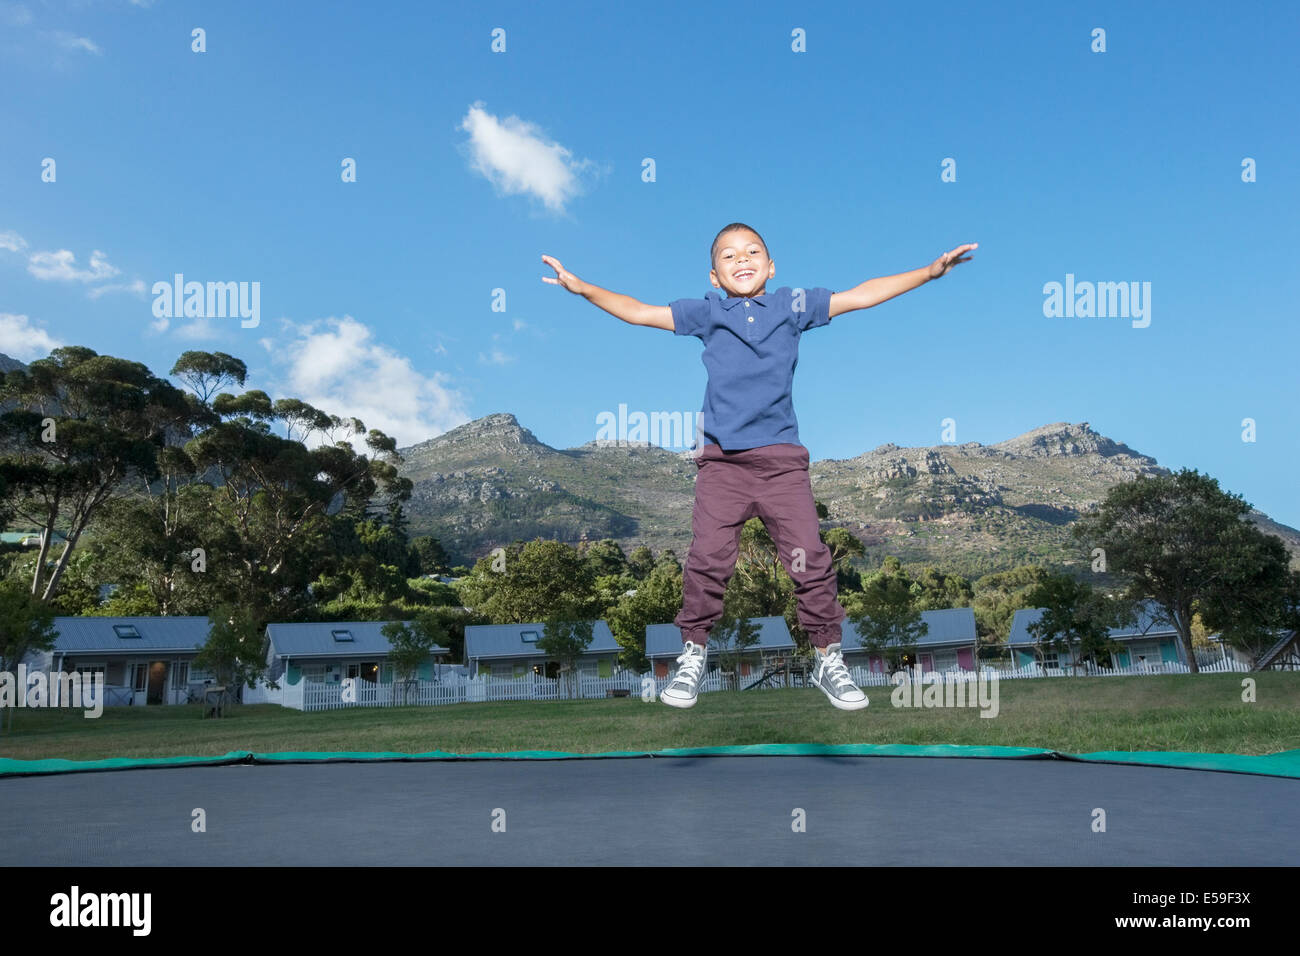 Boy jumping on trampoline outdoors - Stock Image